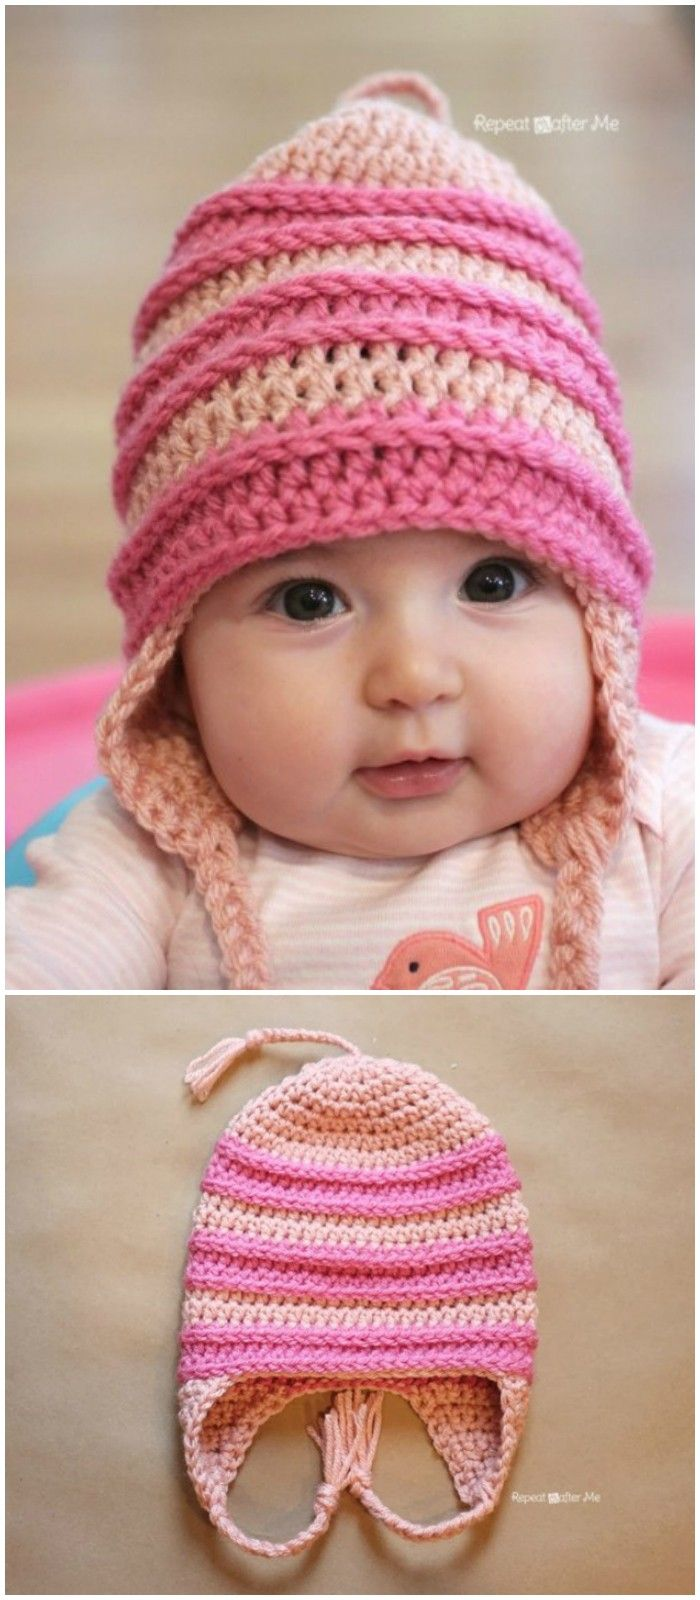 I have rounded up 20 Free and Easy Knitting Patterns for your ...